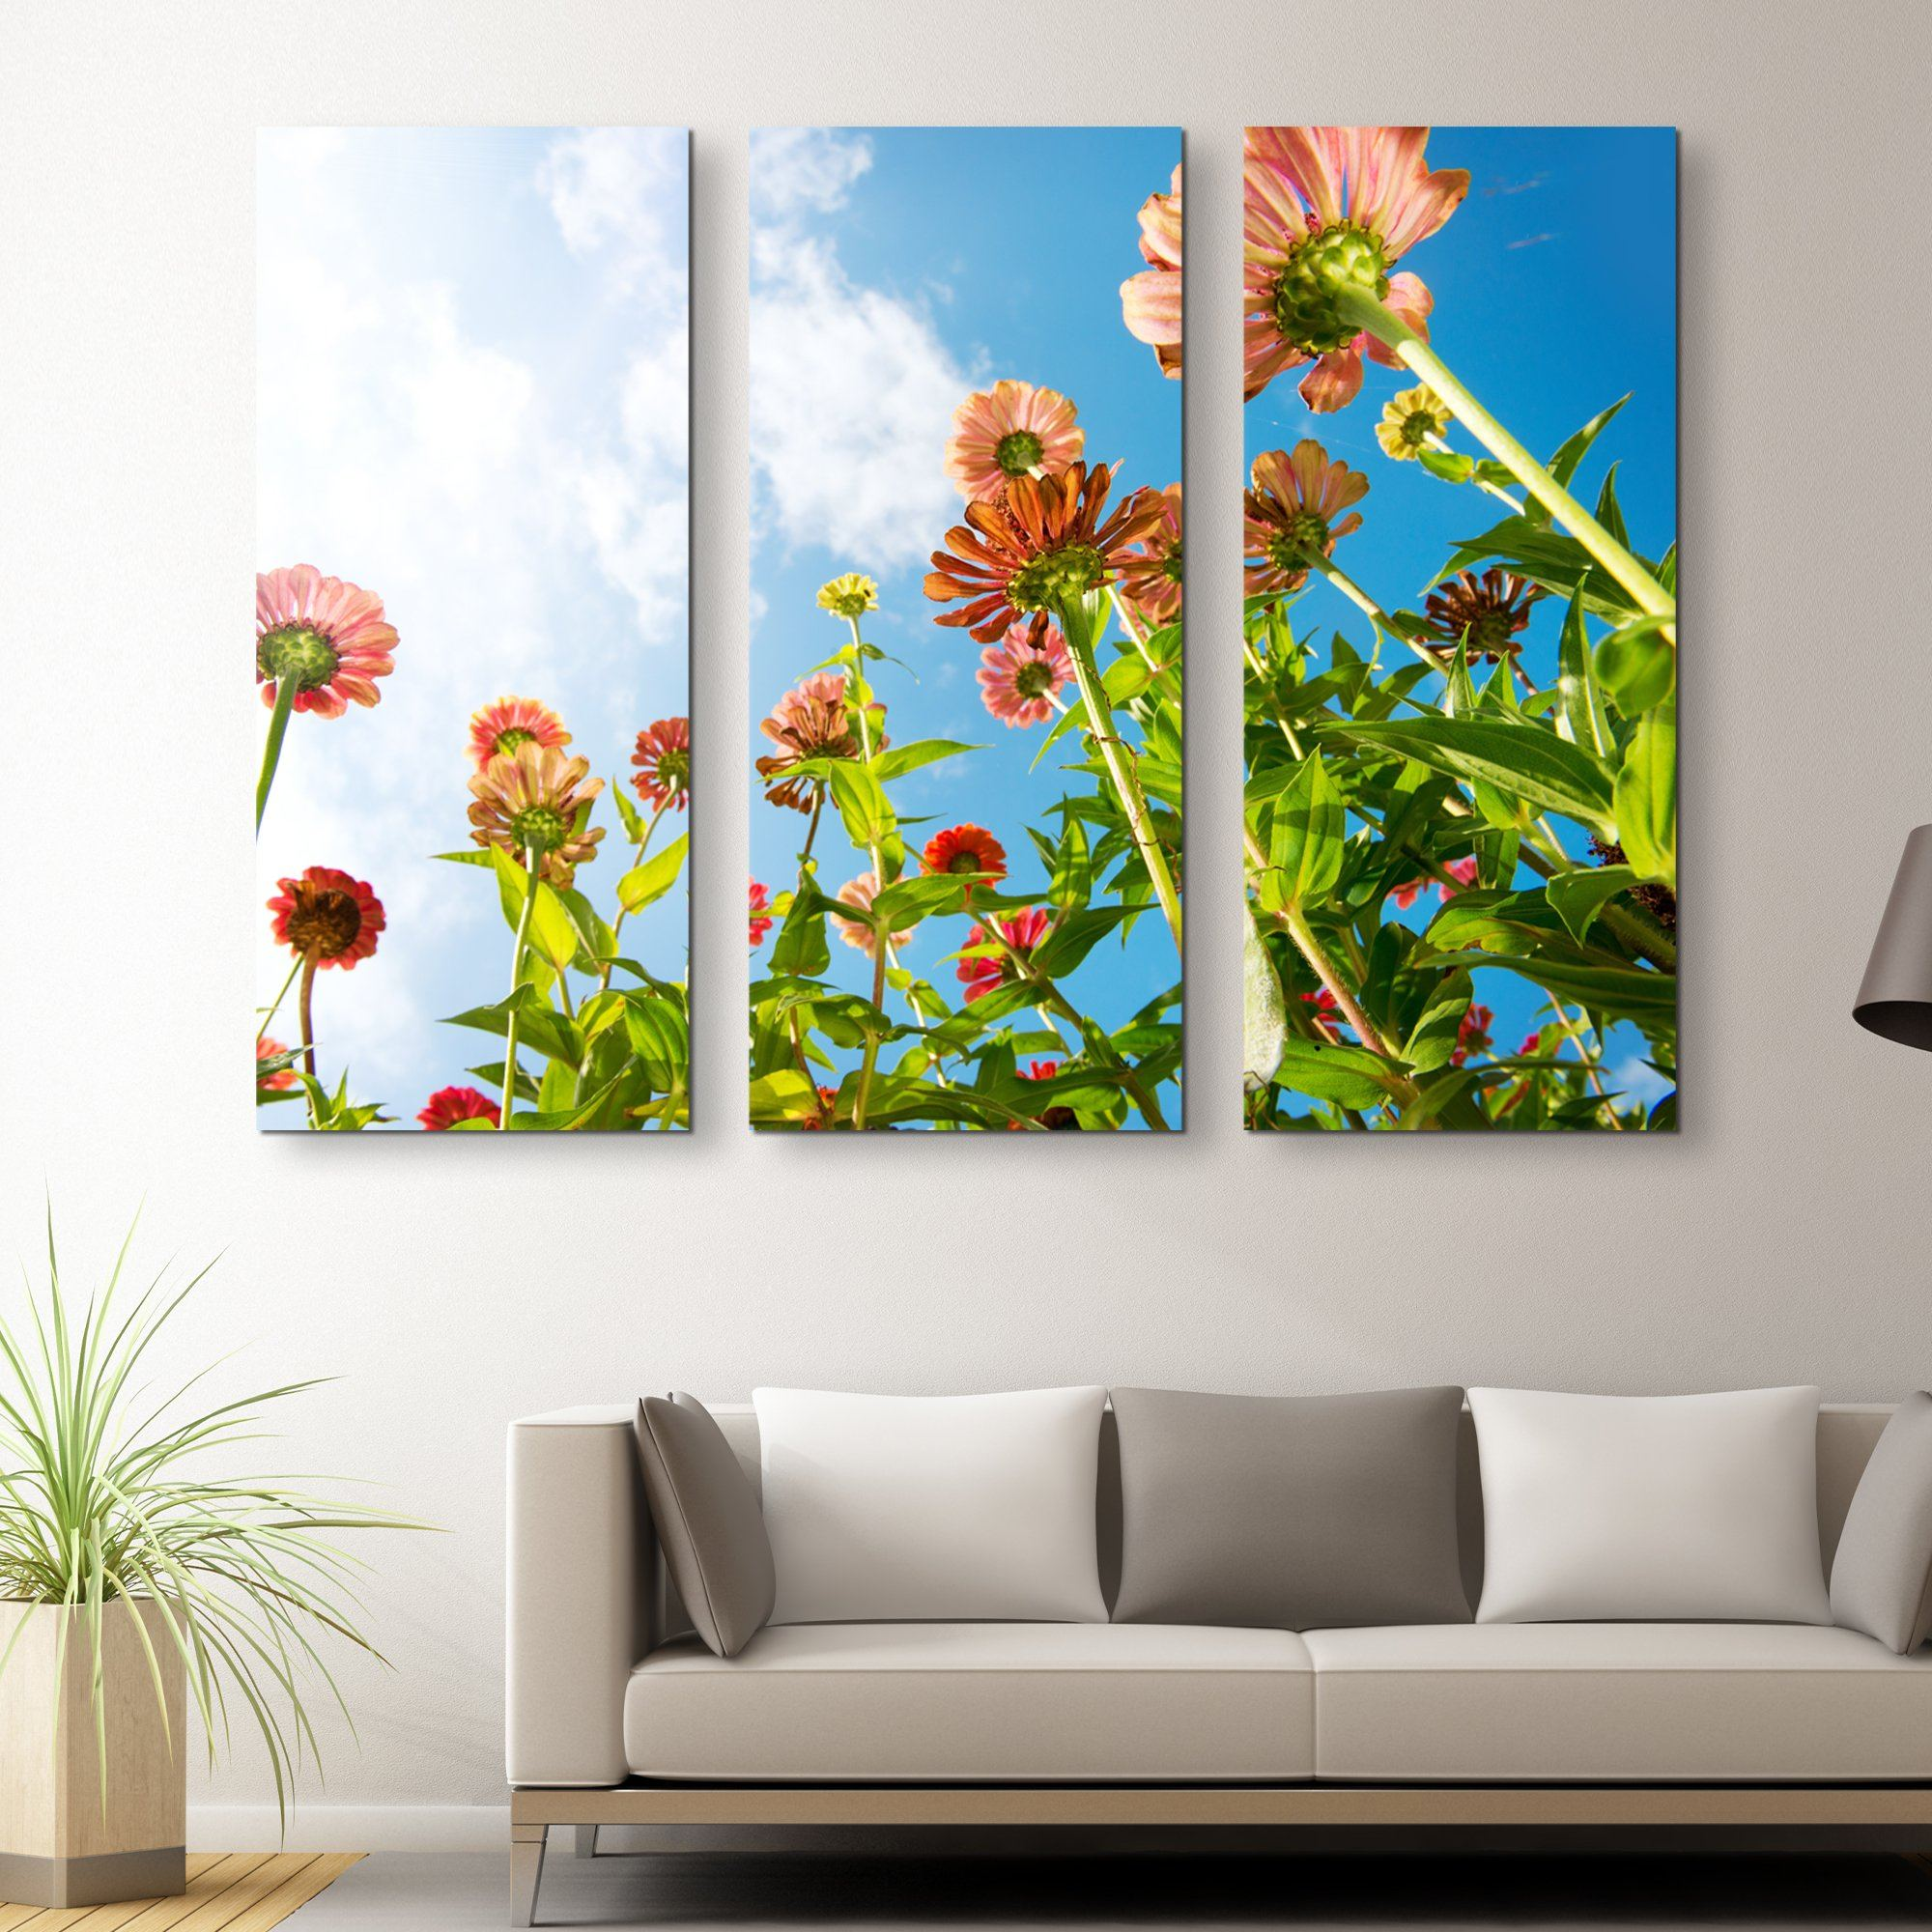 3 piece Flowers Over Blue Sky wall art